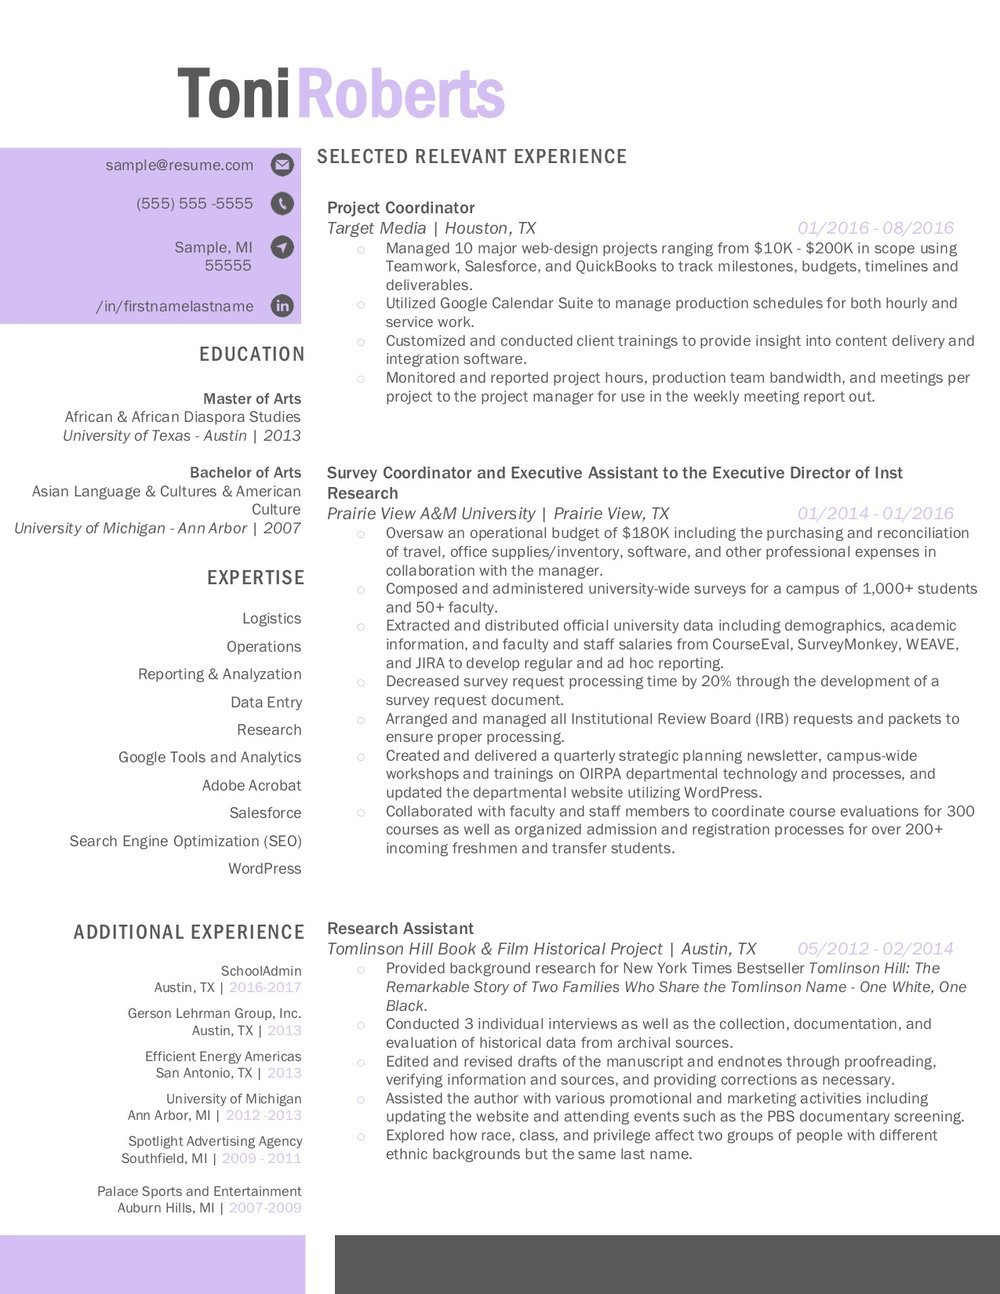 Client Resume #33. Click to Enlarge.